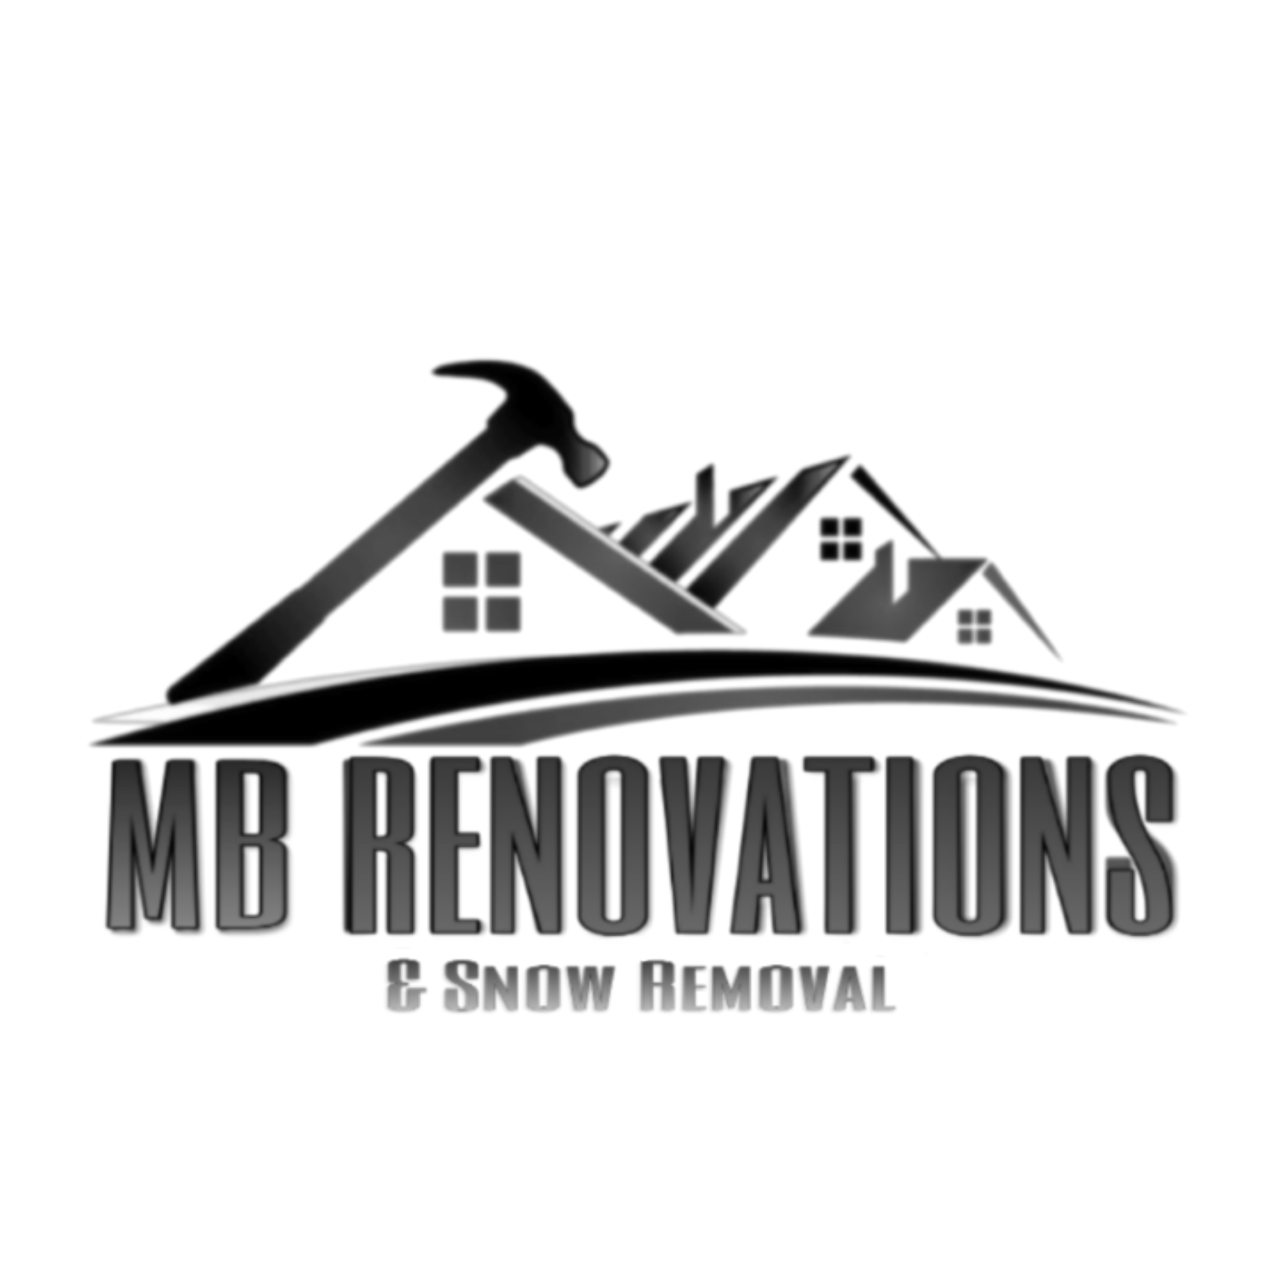 MB Renovations & Snow Removal